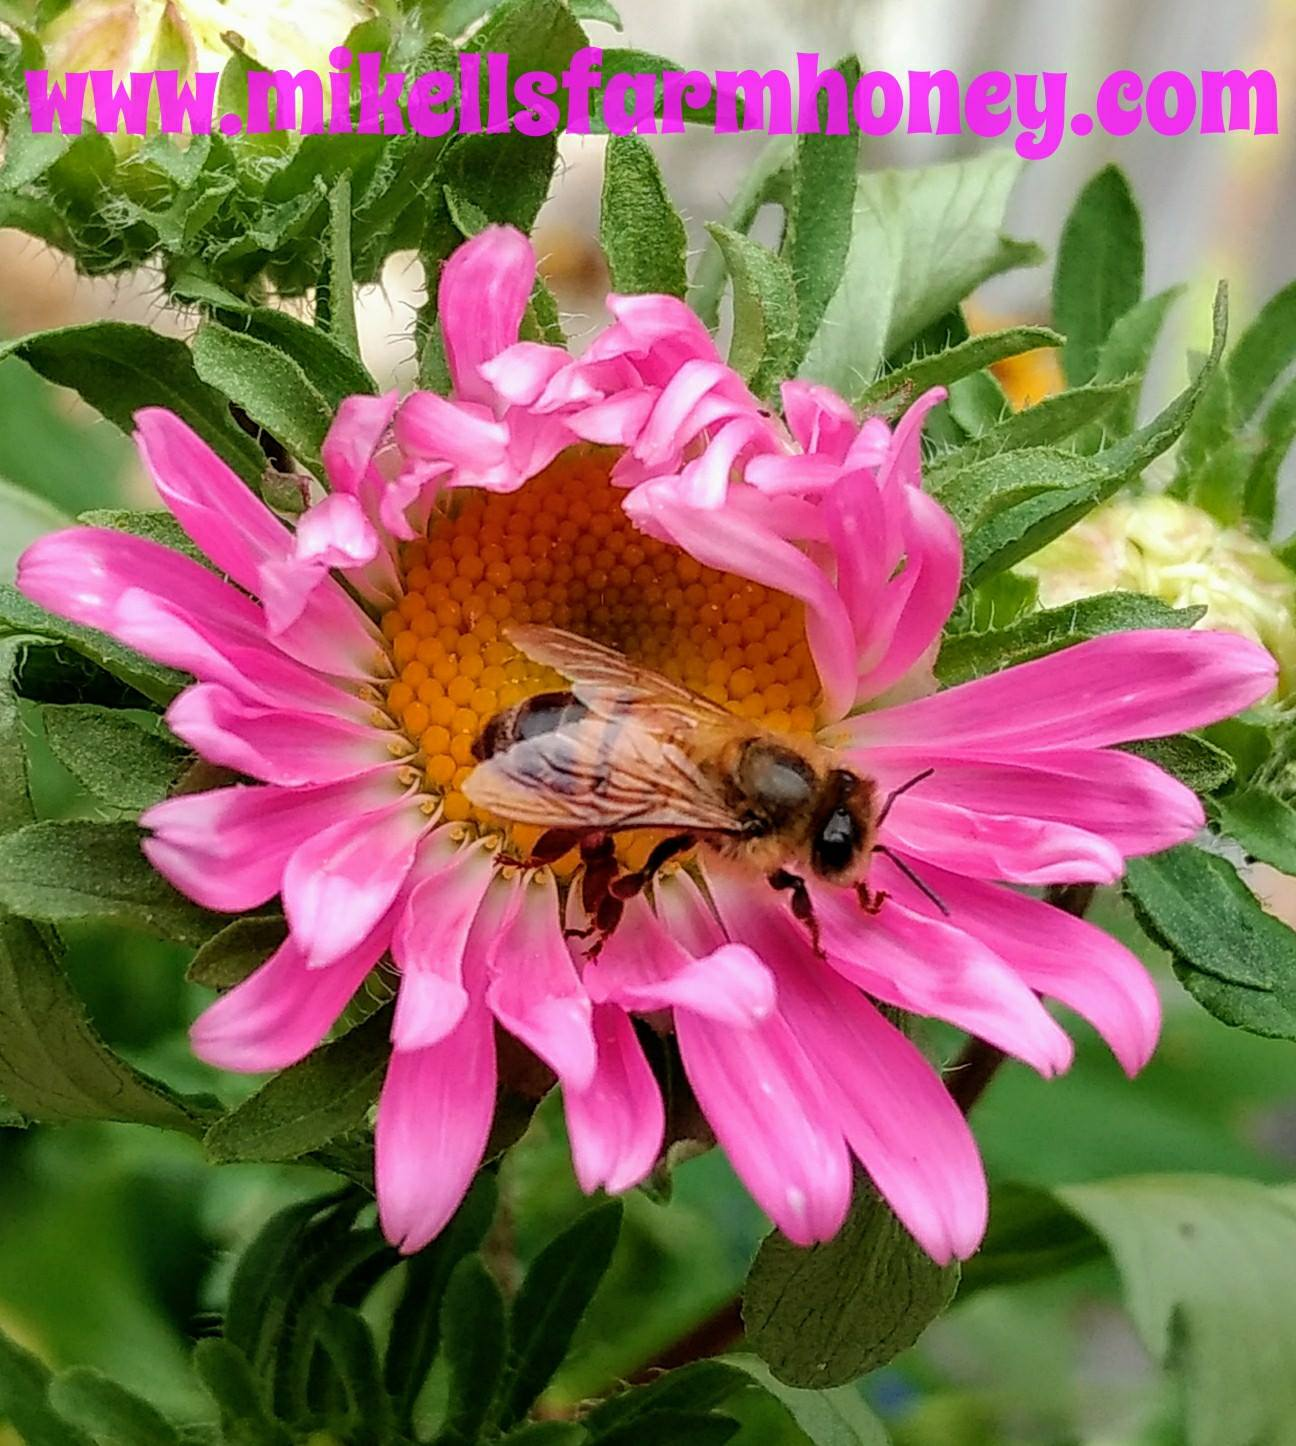 PIC OF BEE ON FLOWER.USE.MFH BNBS